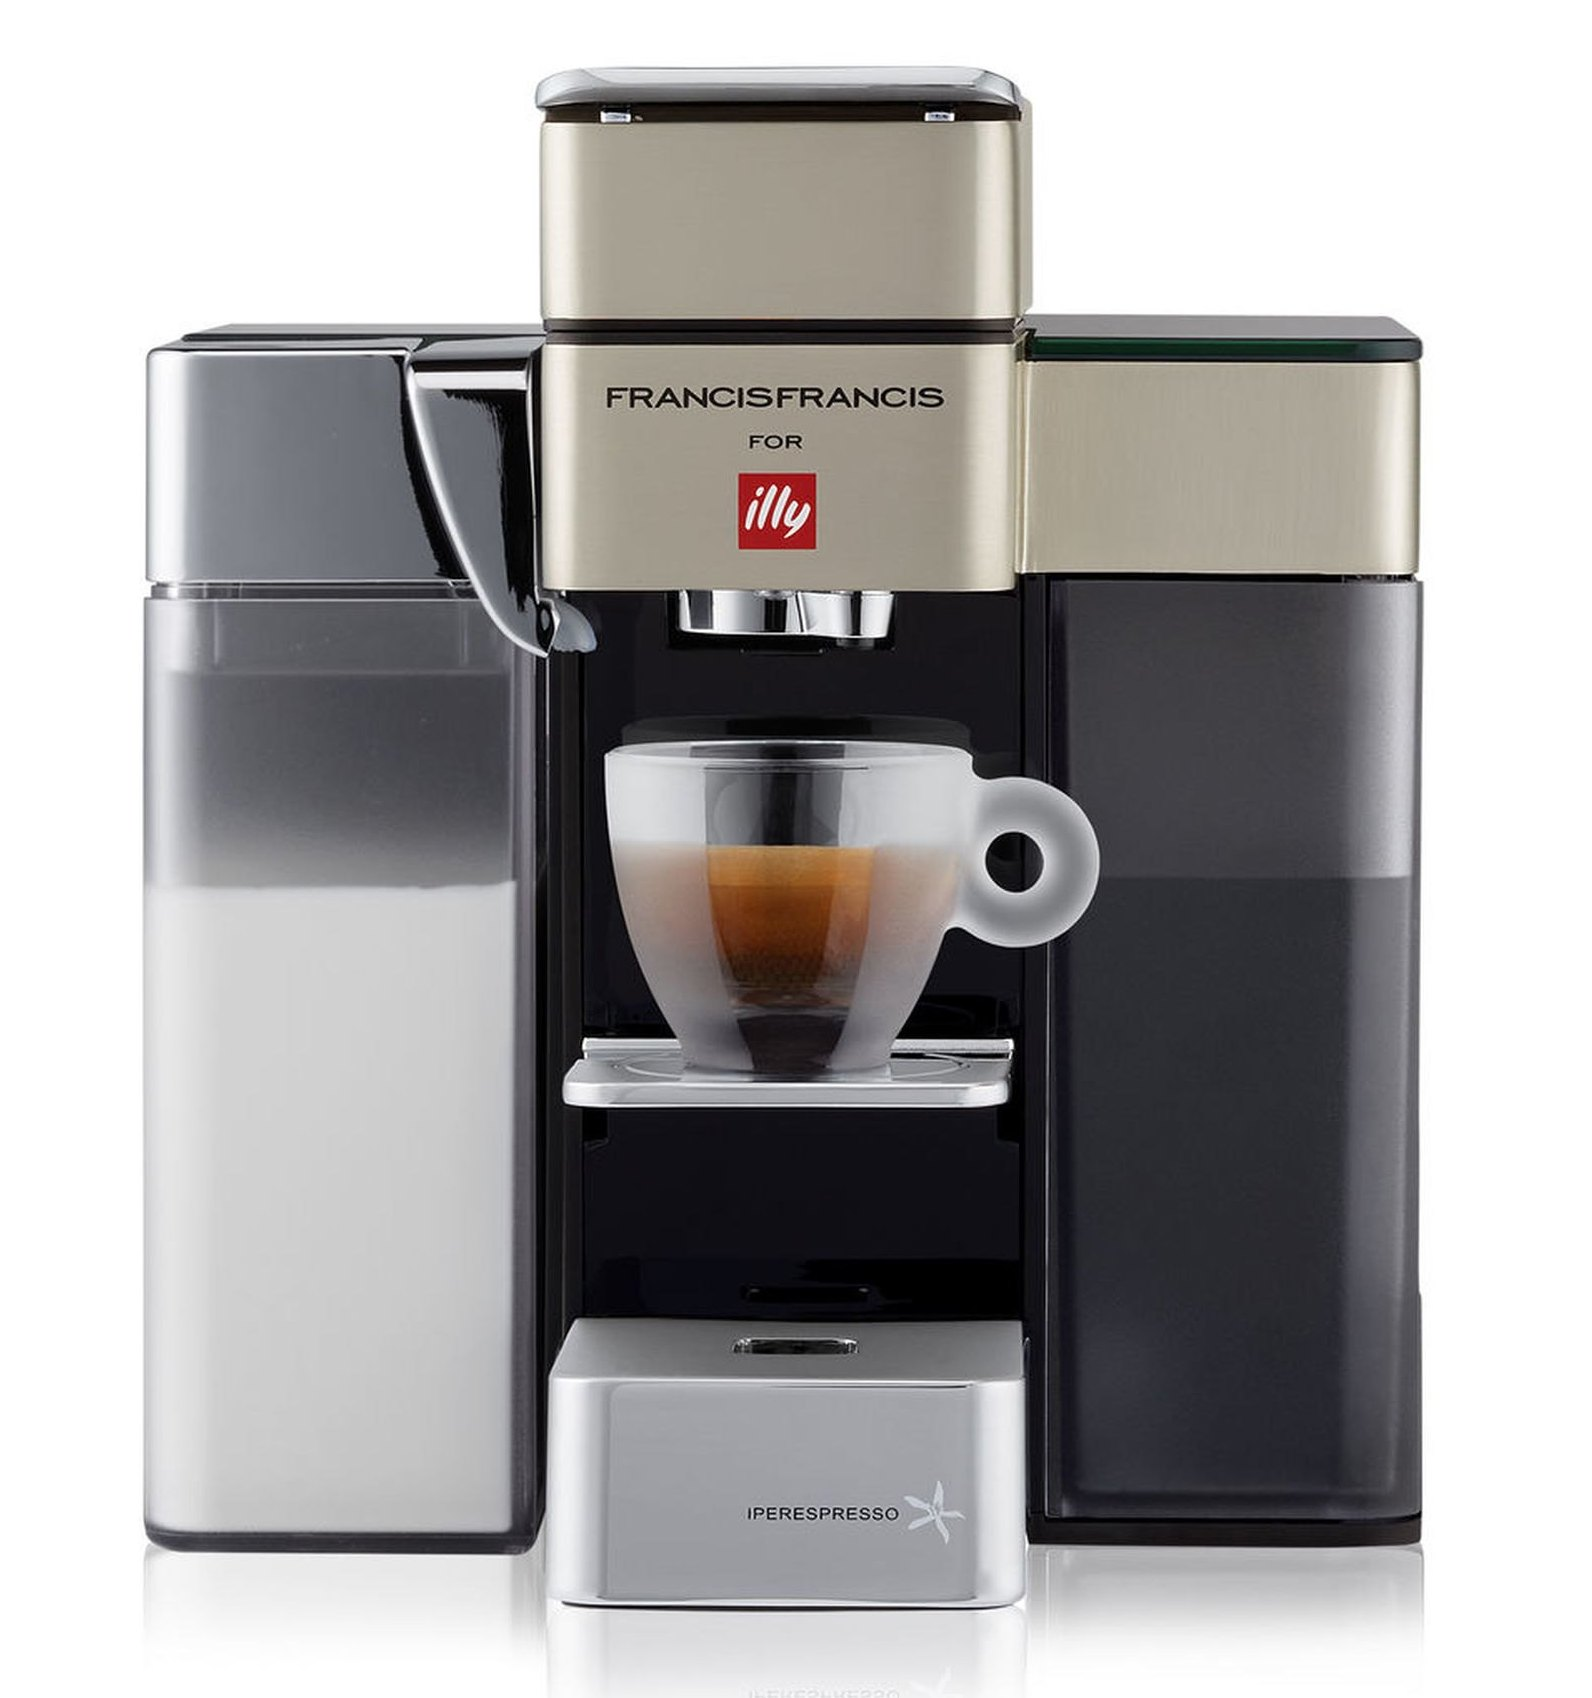 ILLY Francis Francis Y5 Milk, Espresso & Coffee Machine